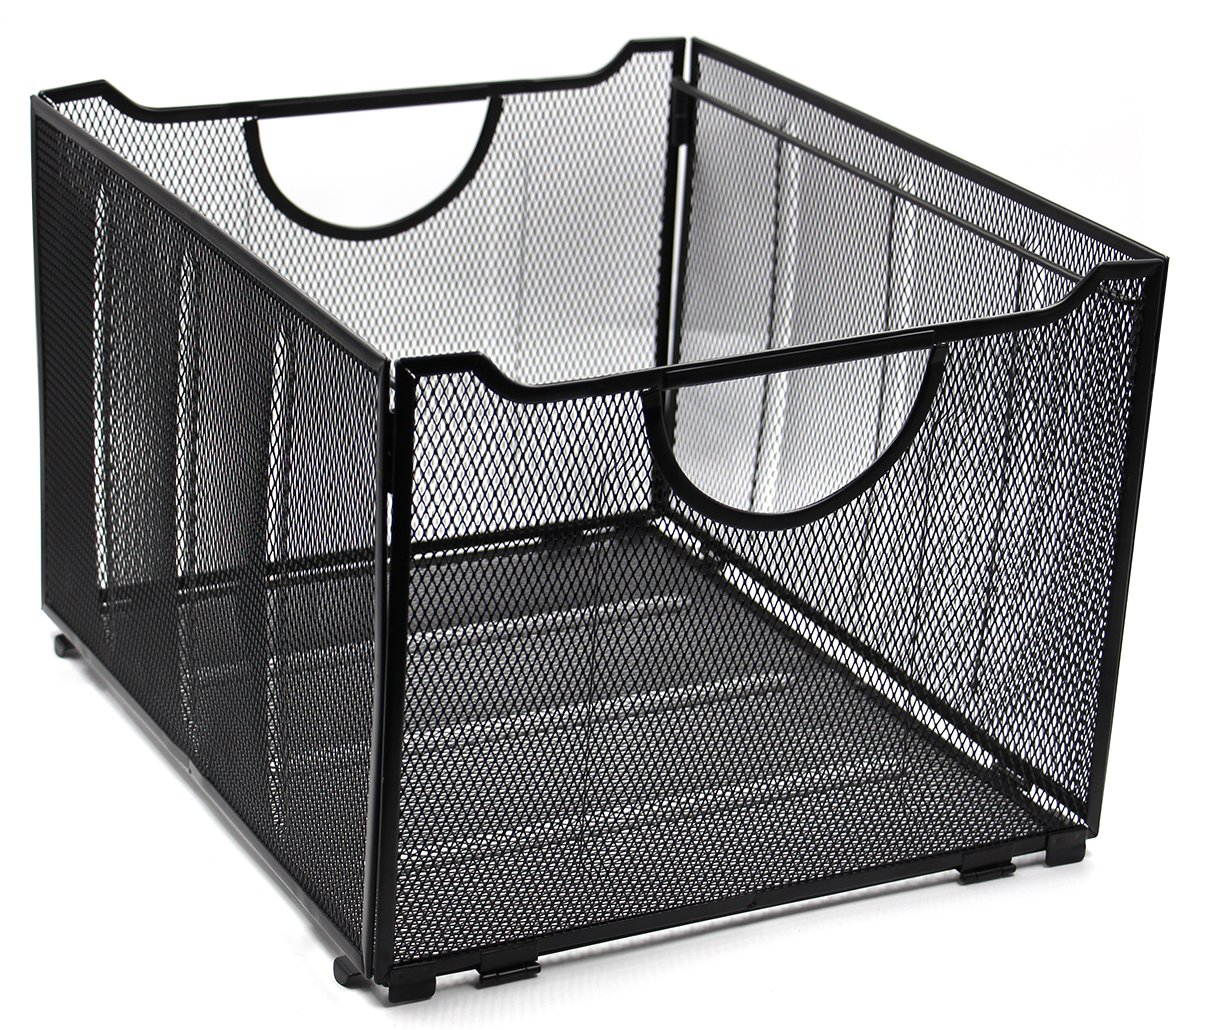 EasyPAG Mesh File Box/Foldable Storage Crate Box 12 x 9-1/4 inch, Black